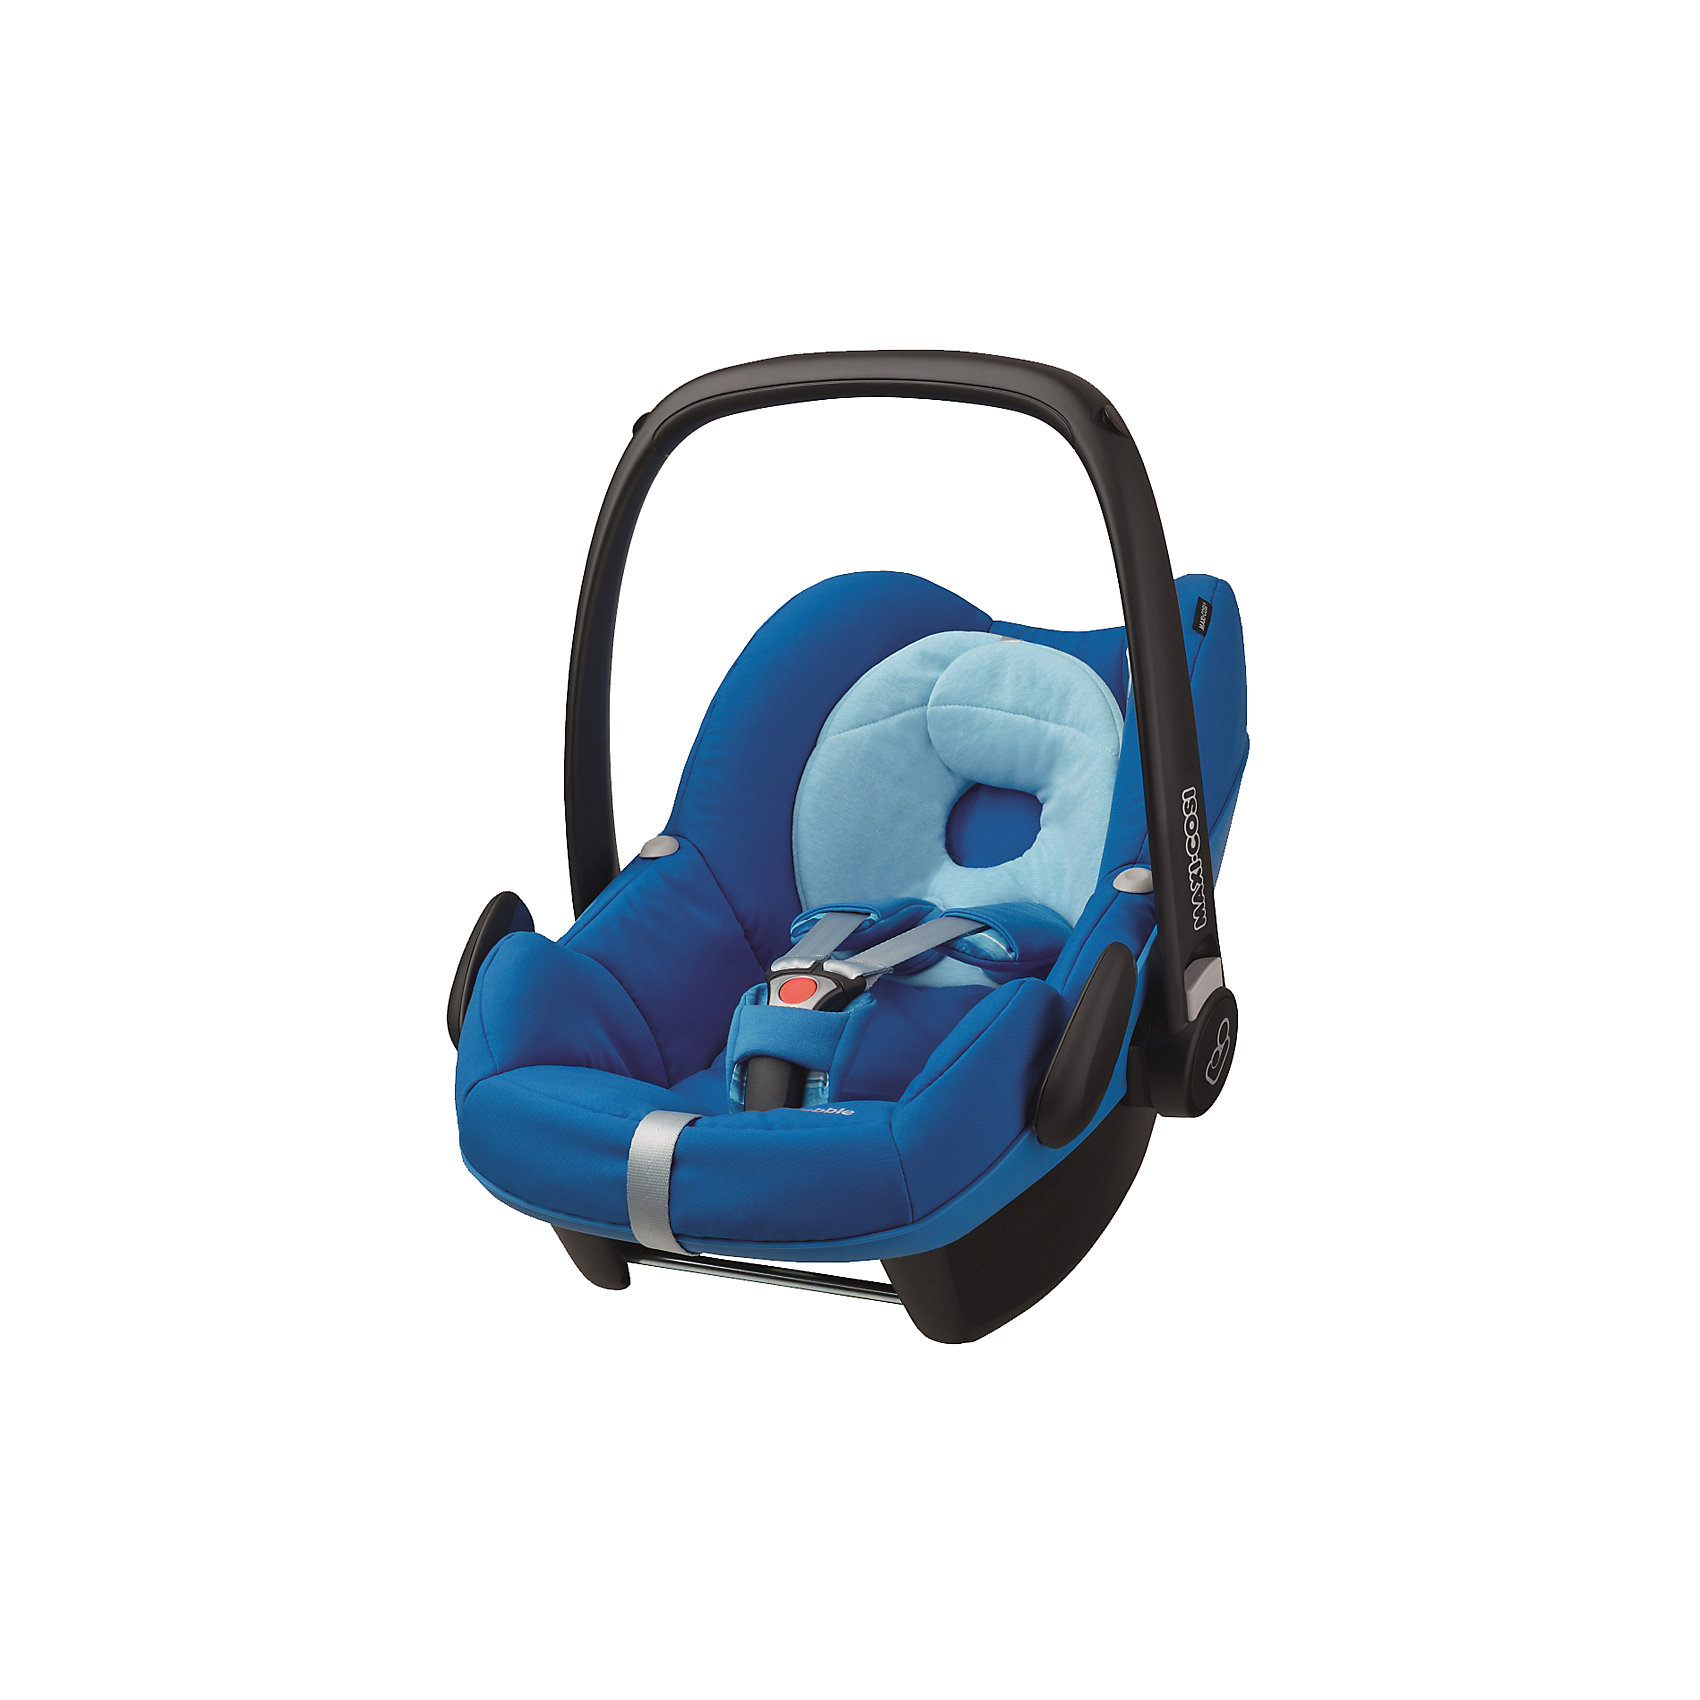 Maxi Cosi Автокресло Maxi-Cosi Pebble 0-13 кг, Water Color Blue